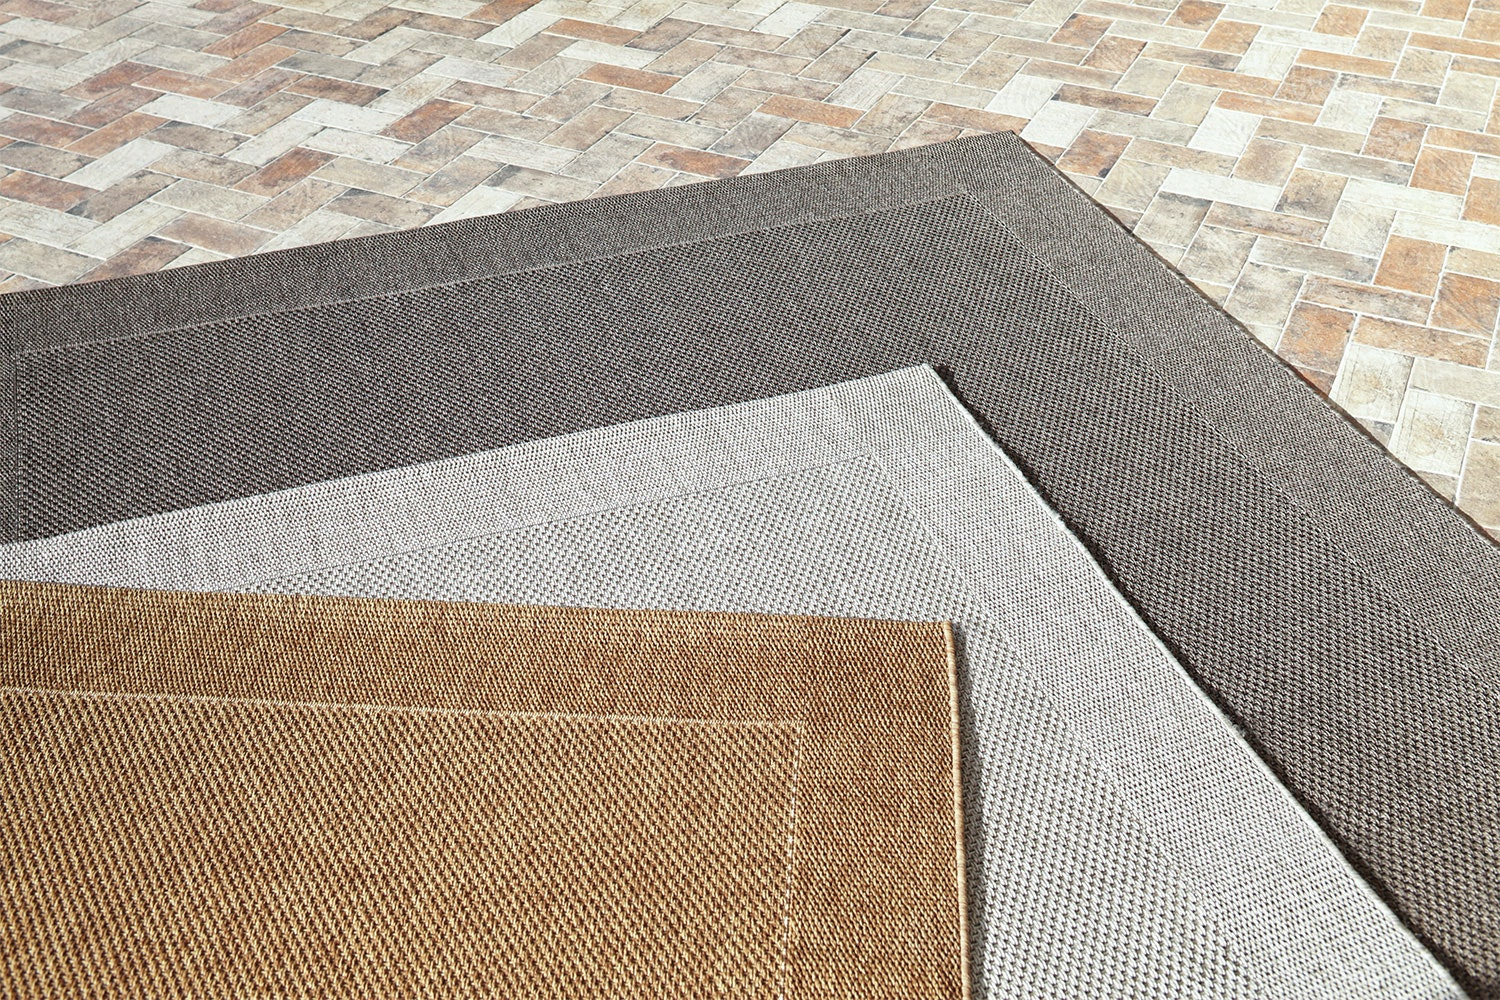 Outdoor Rugs 80 x 150cm by Rug Traders